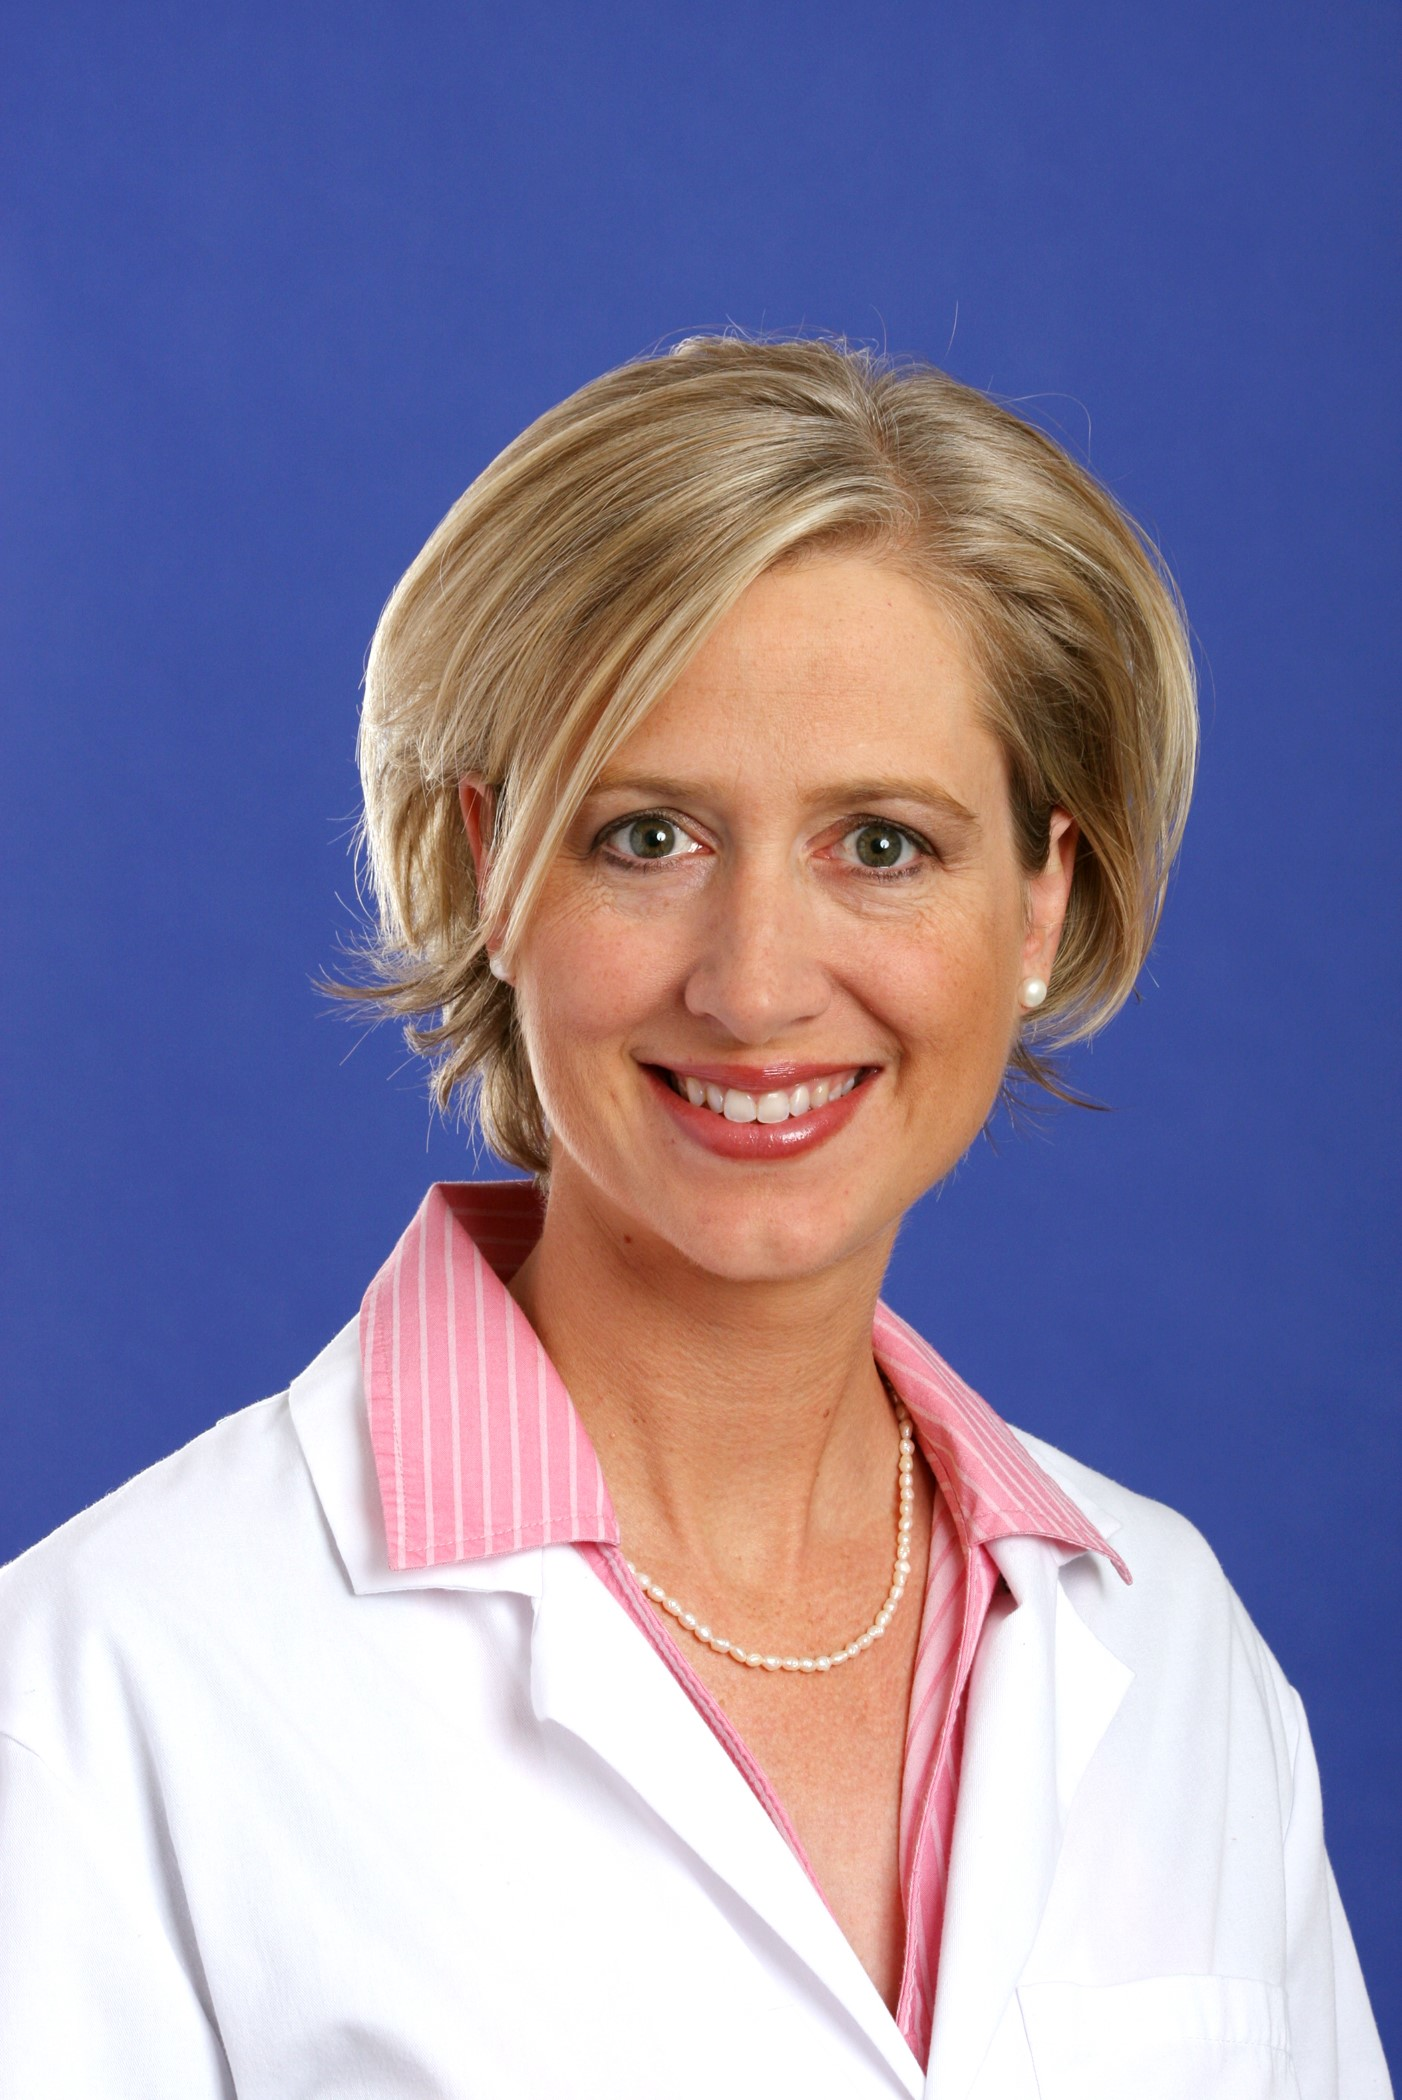 Catherine H. Balestra, MD, FAAD